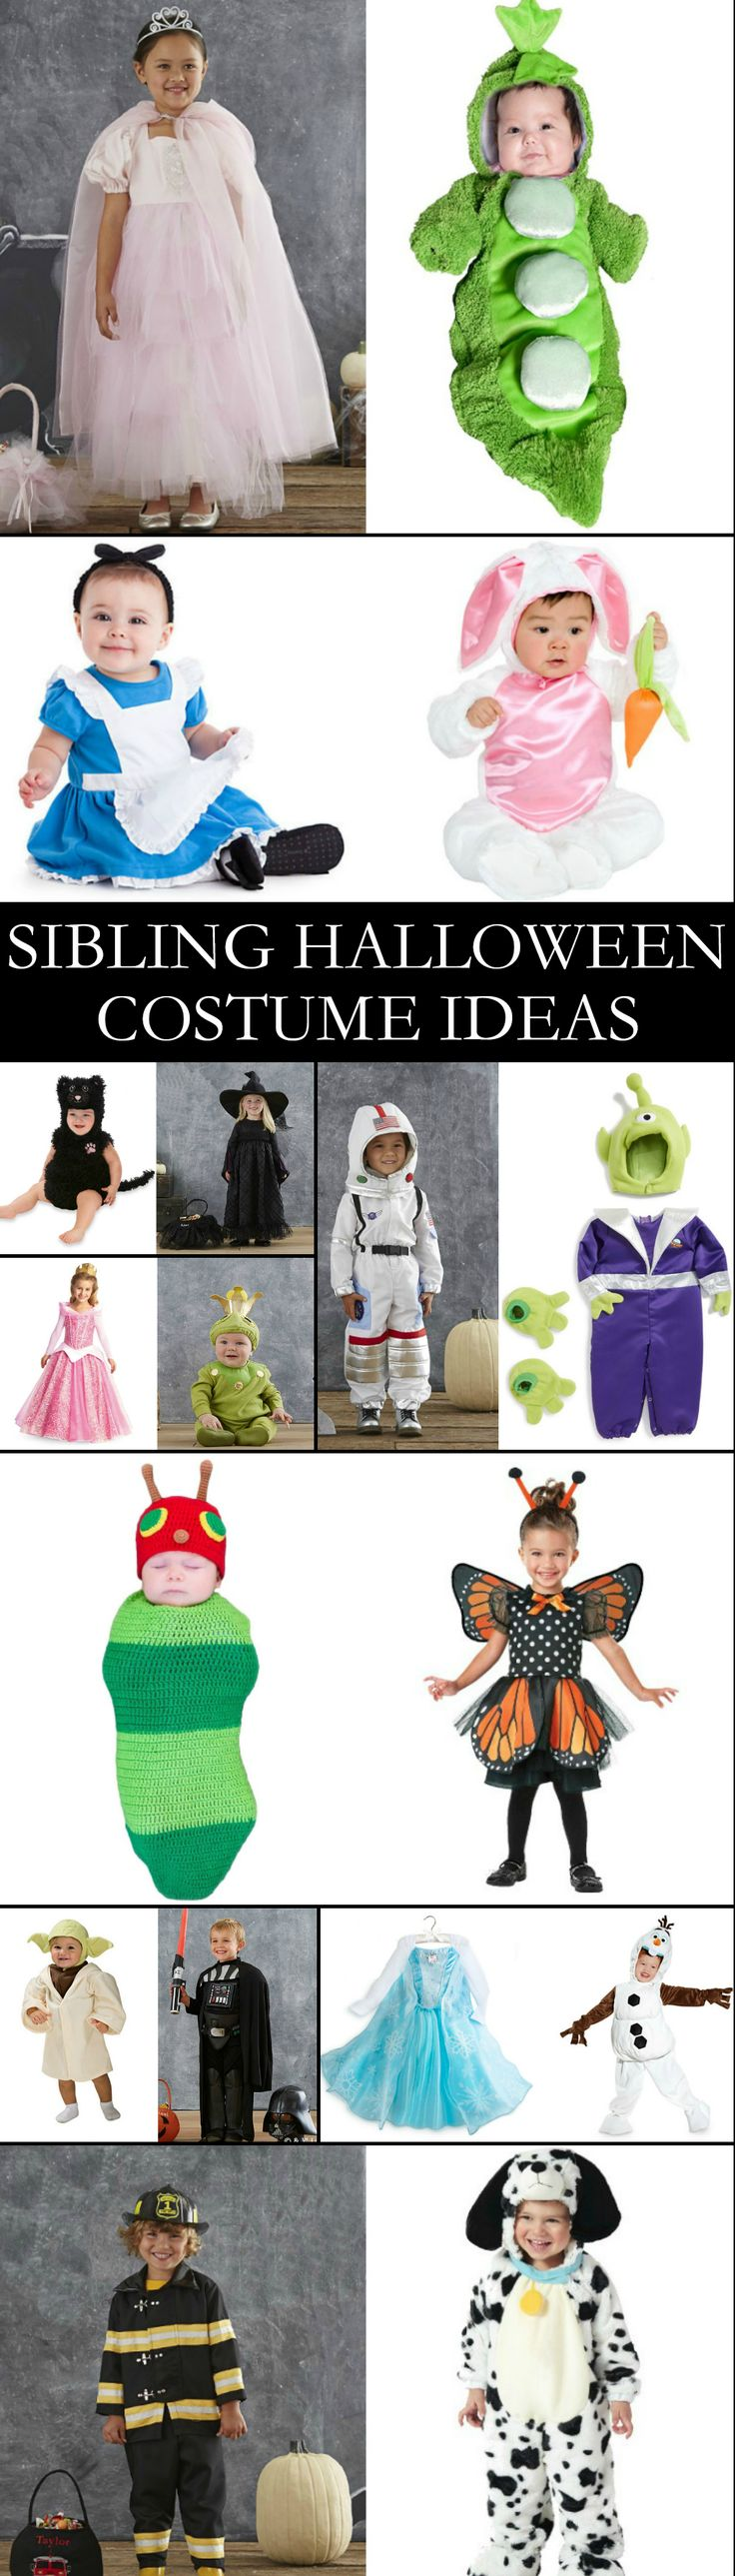 Halloween Sibling Costume Ideas - you'll have the cutest pair on the block with these ideas!